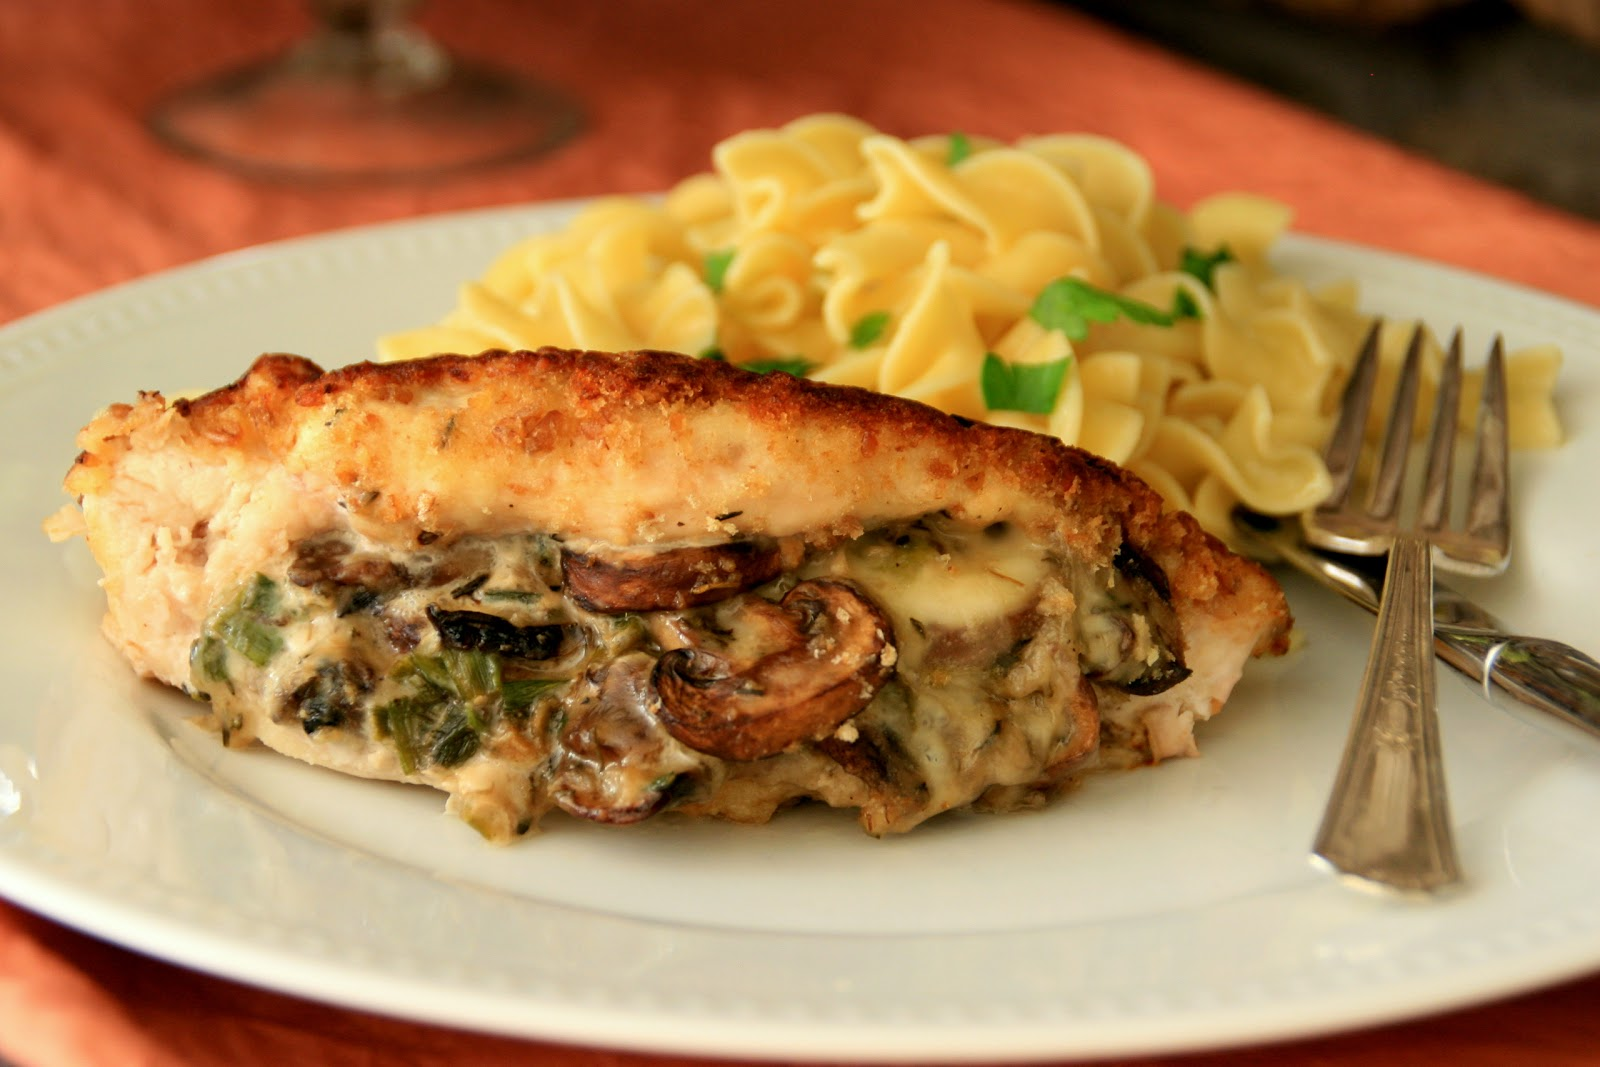 ... with Chopin, Living with Elmo: Mushroom-Stuffed Chicken Breasts